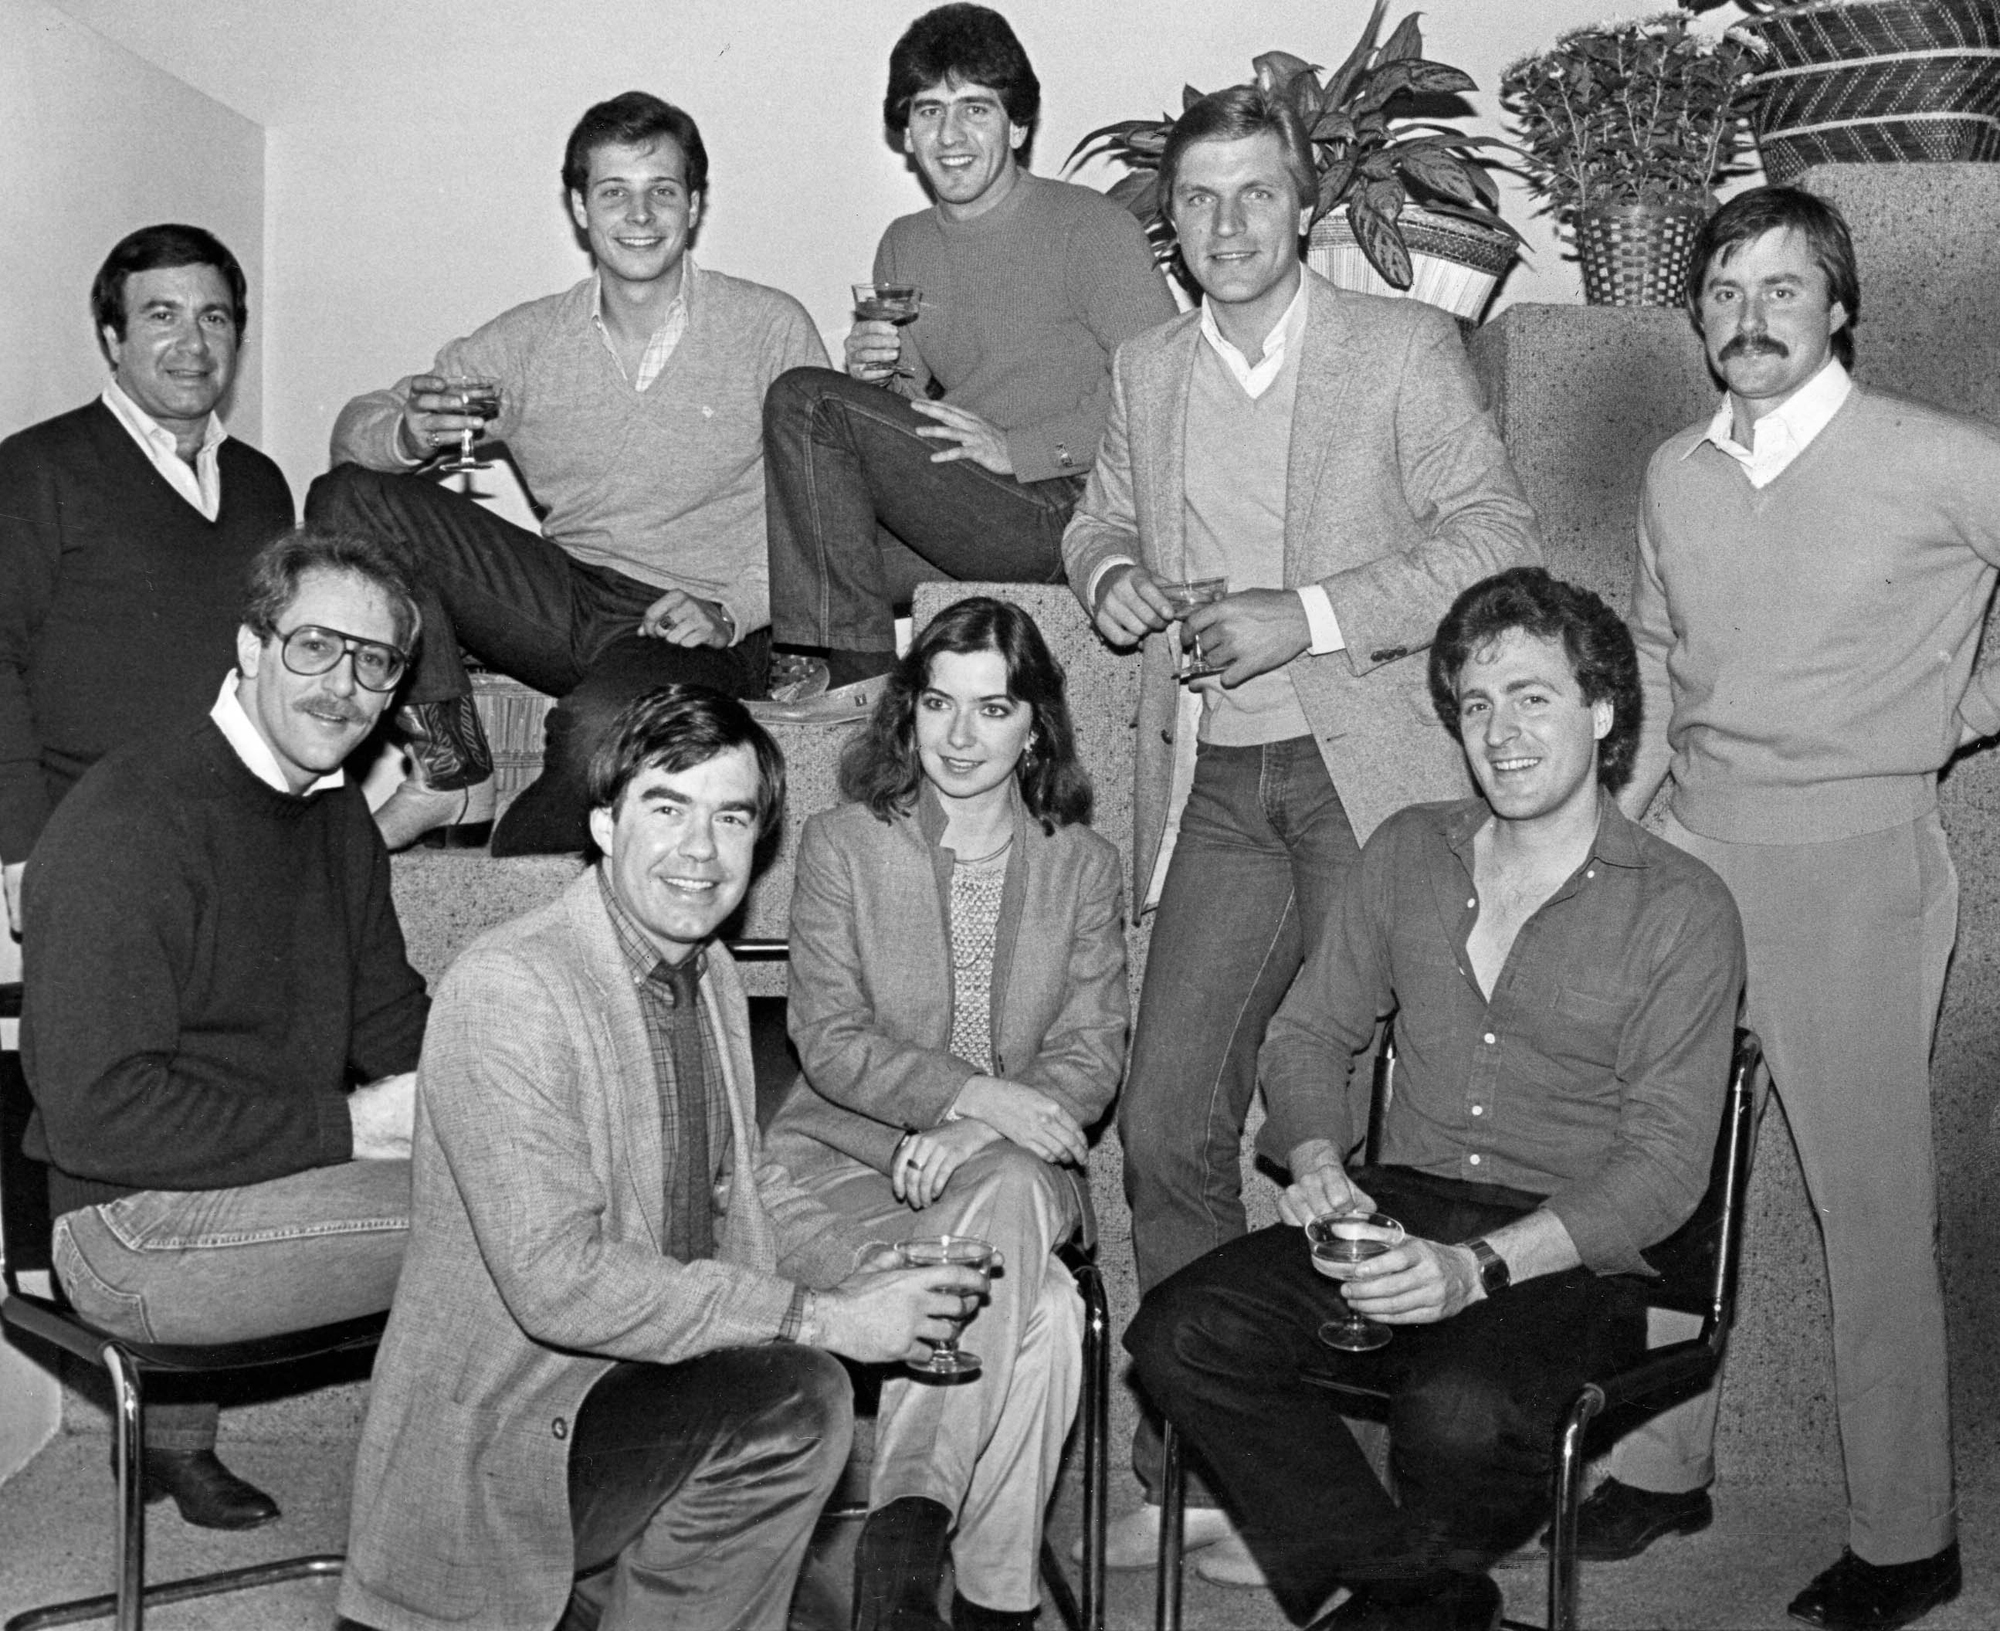 """Gathered with their publishers are some of the entrants from the book """"The Most Eligible Bachelors in Pittsburgh."""" They are, from left, front row, Arthur Simon, publishers G. Brinton Motheral III and Gretchen Burkhart, and Stephen Balaban; second row, Stan Cohen, Oreste Scioscia, Frank Copeland, Stanley Martin and Scott Sprague. (Original caption in .)Nov. 20, 1981 Pittsburgh Press"""